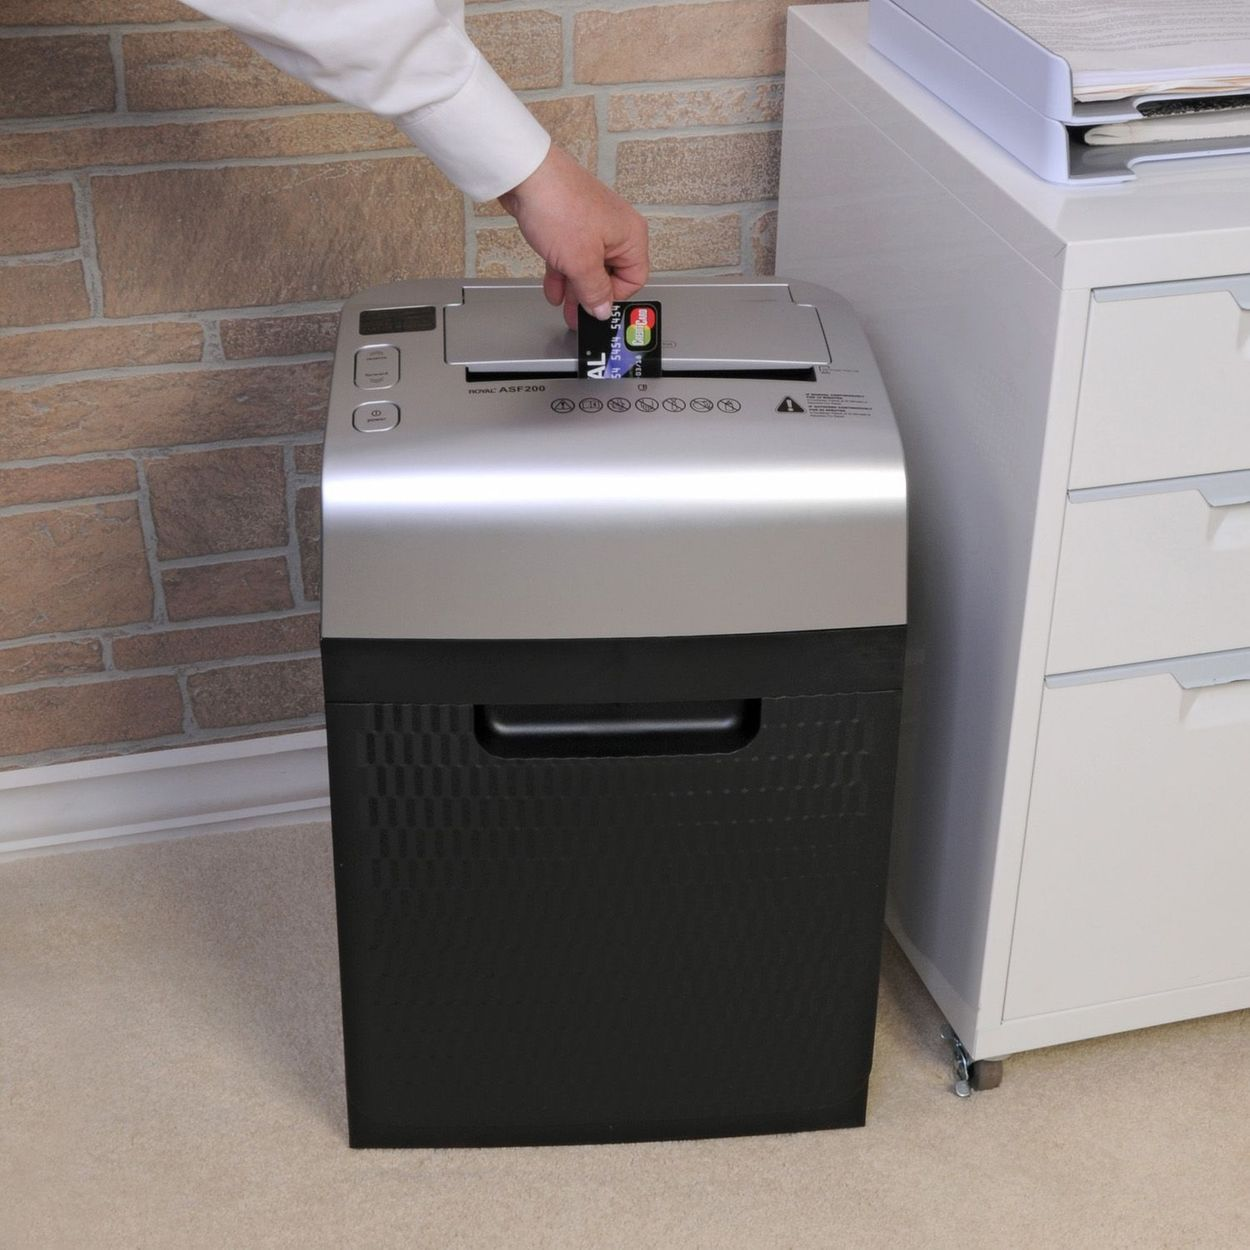 Lifestyle image of unit with credit card in entry slot